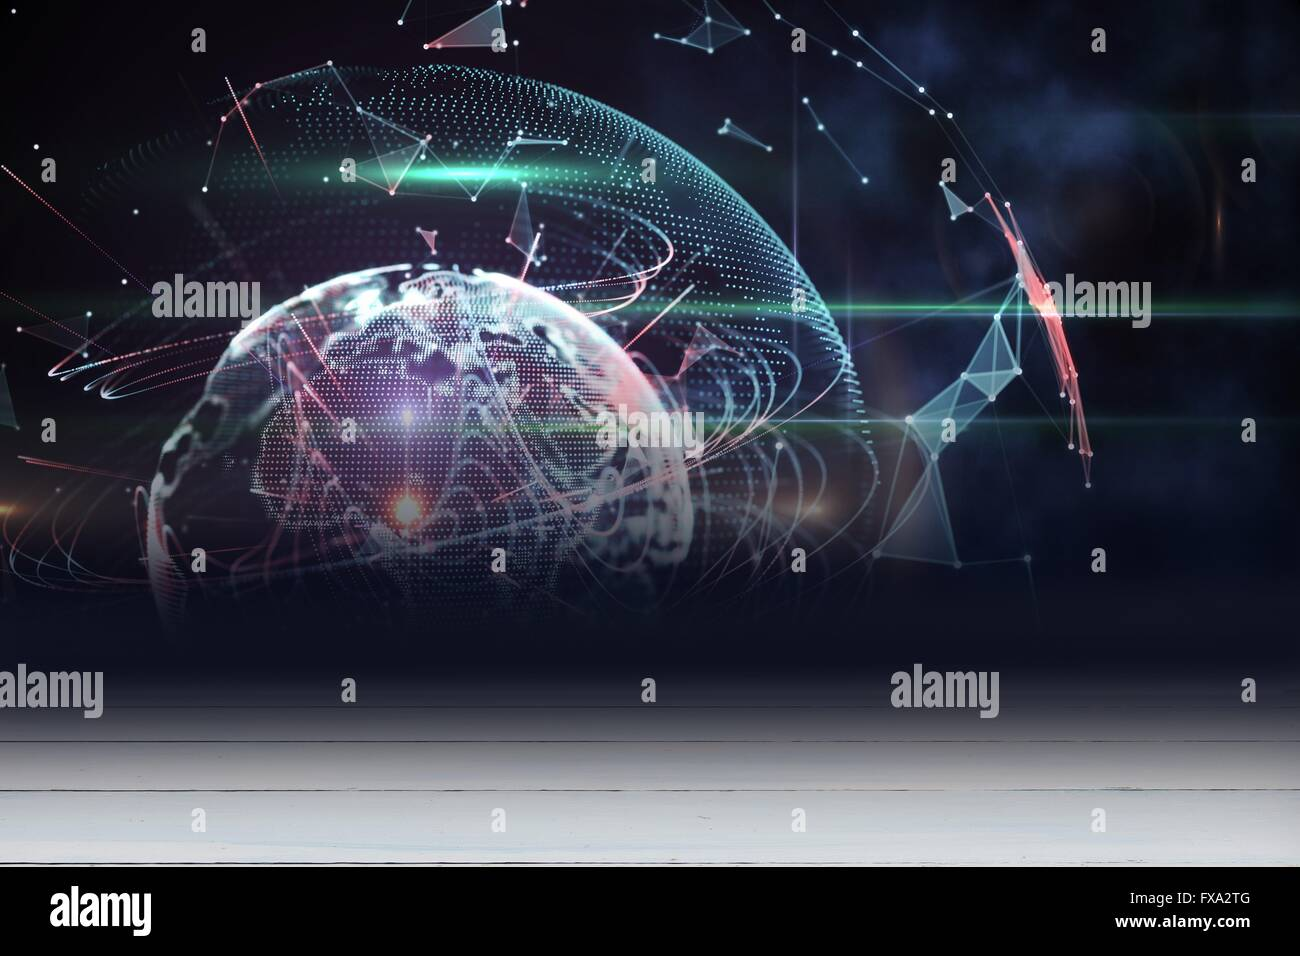 Outer space in room - Stock Image